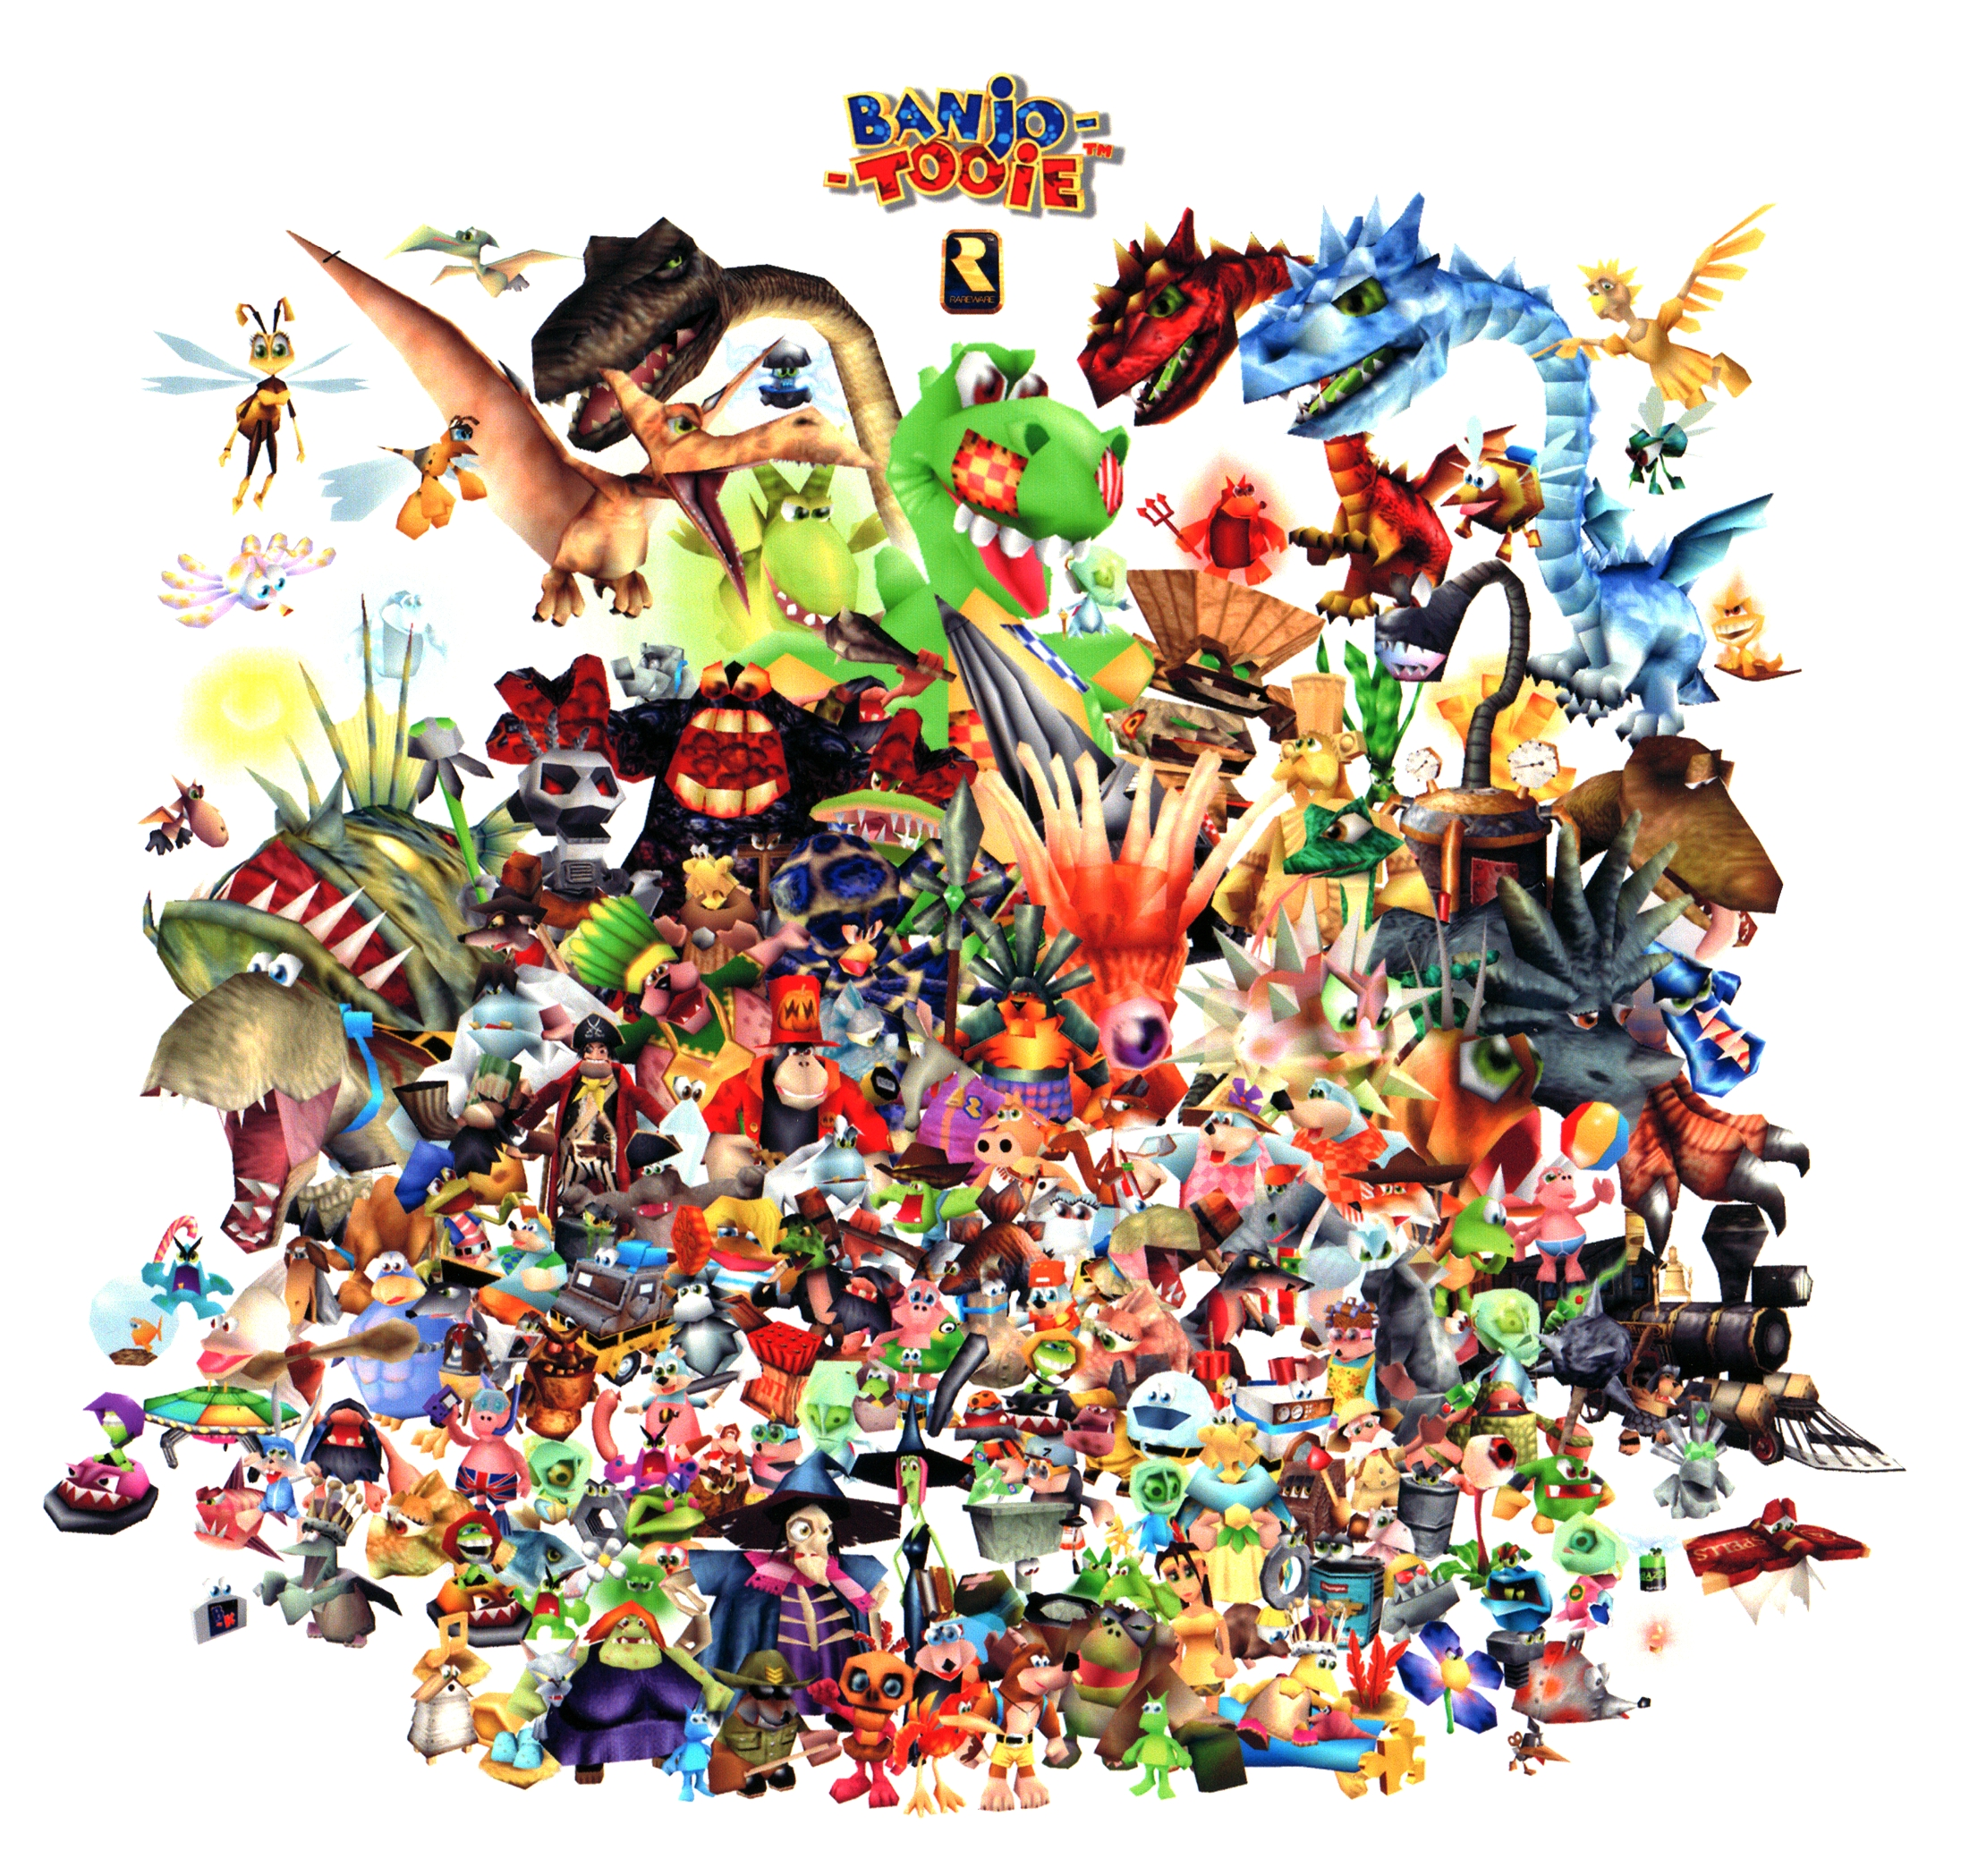 banjo kazooie - photo #42